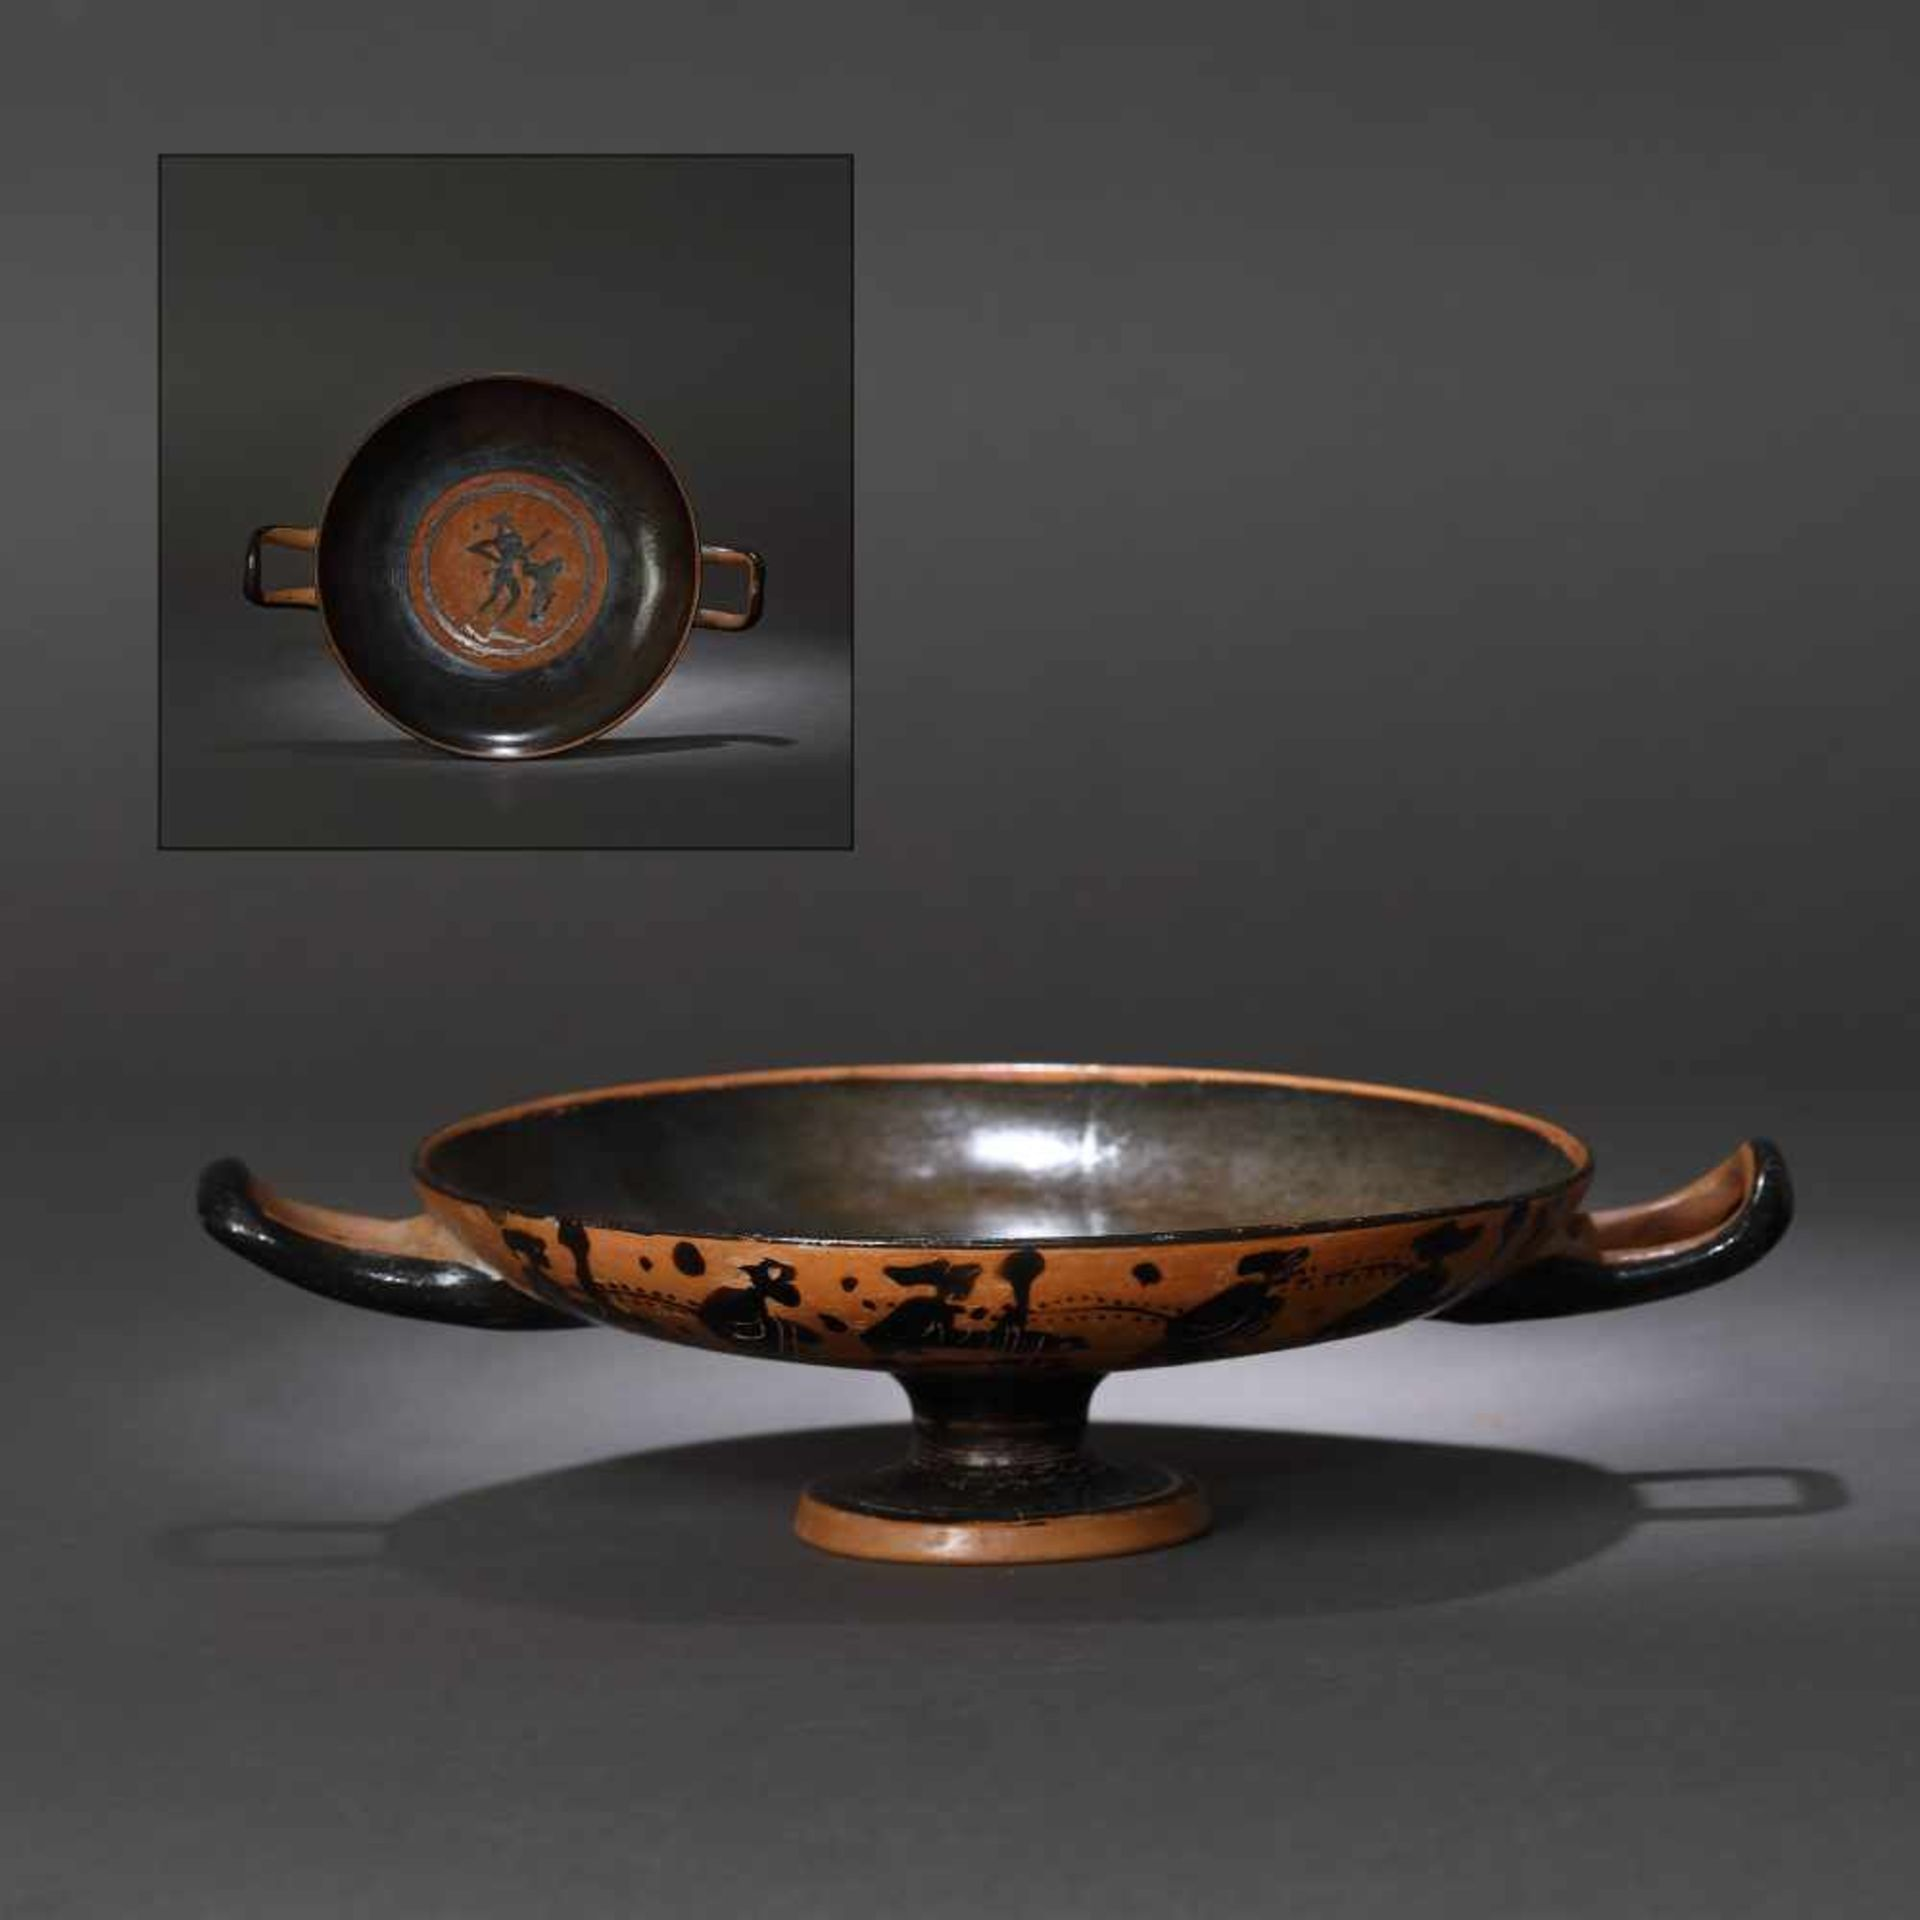 Kylix - ceramic wine jug, black-figure style, Classical Greece, approx. 2,400 years old, 4th century